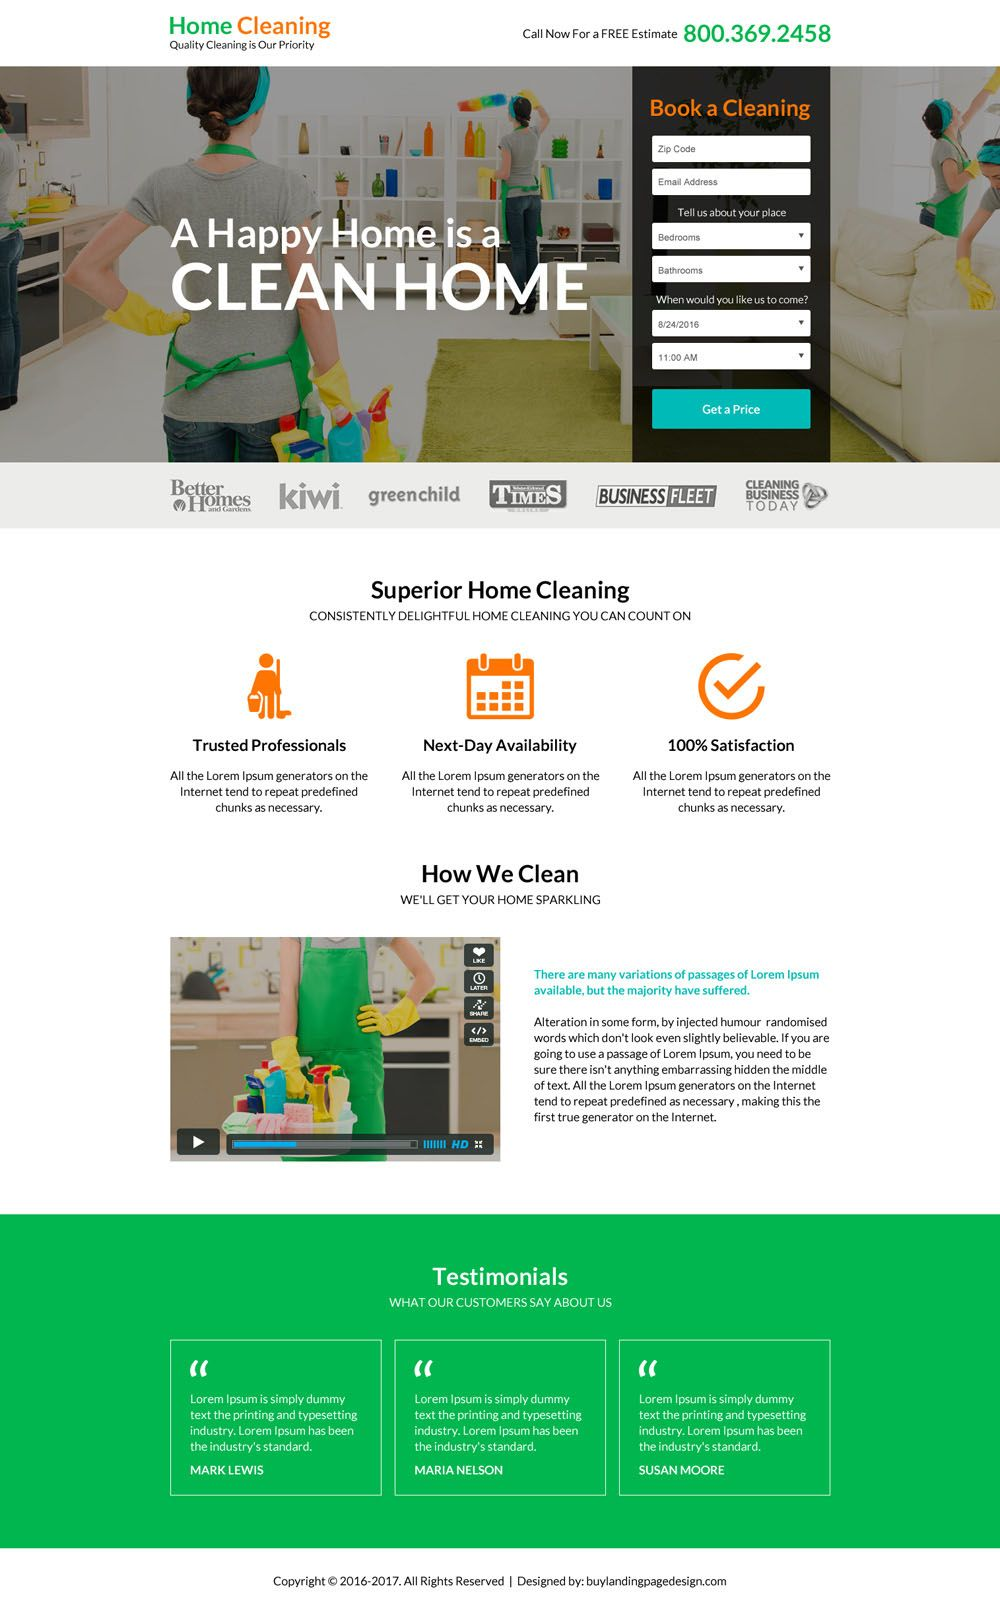 Superior Home Cleaning Service Lead Gen Landing Page Design